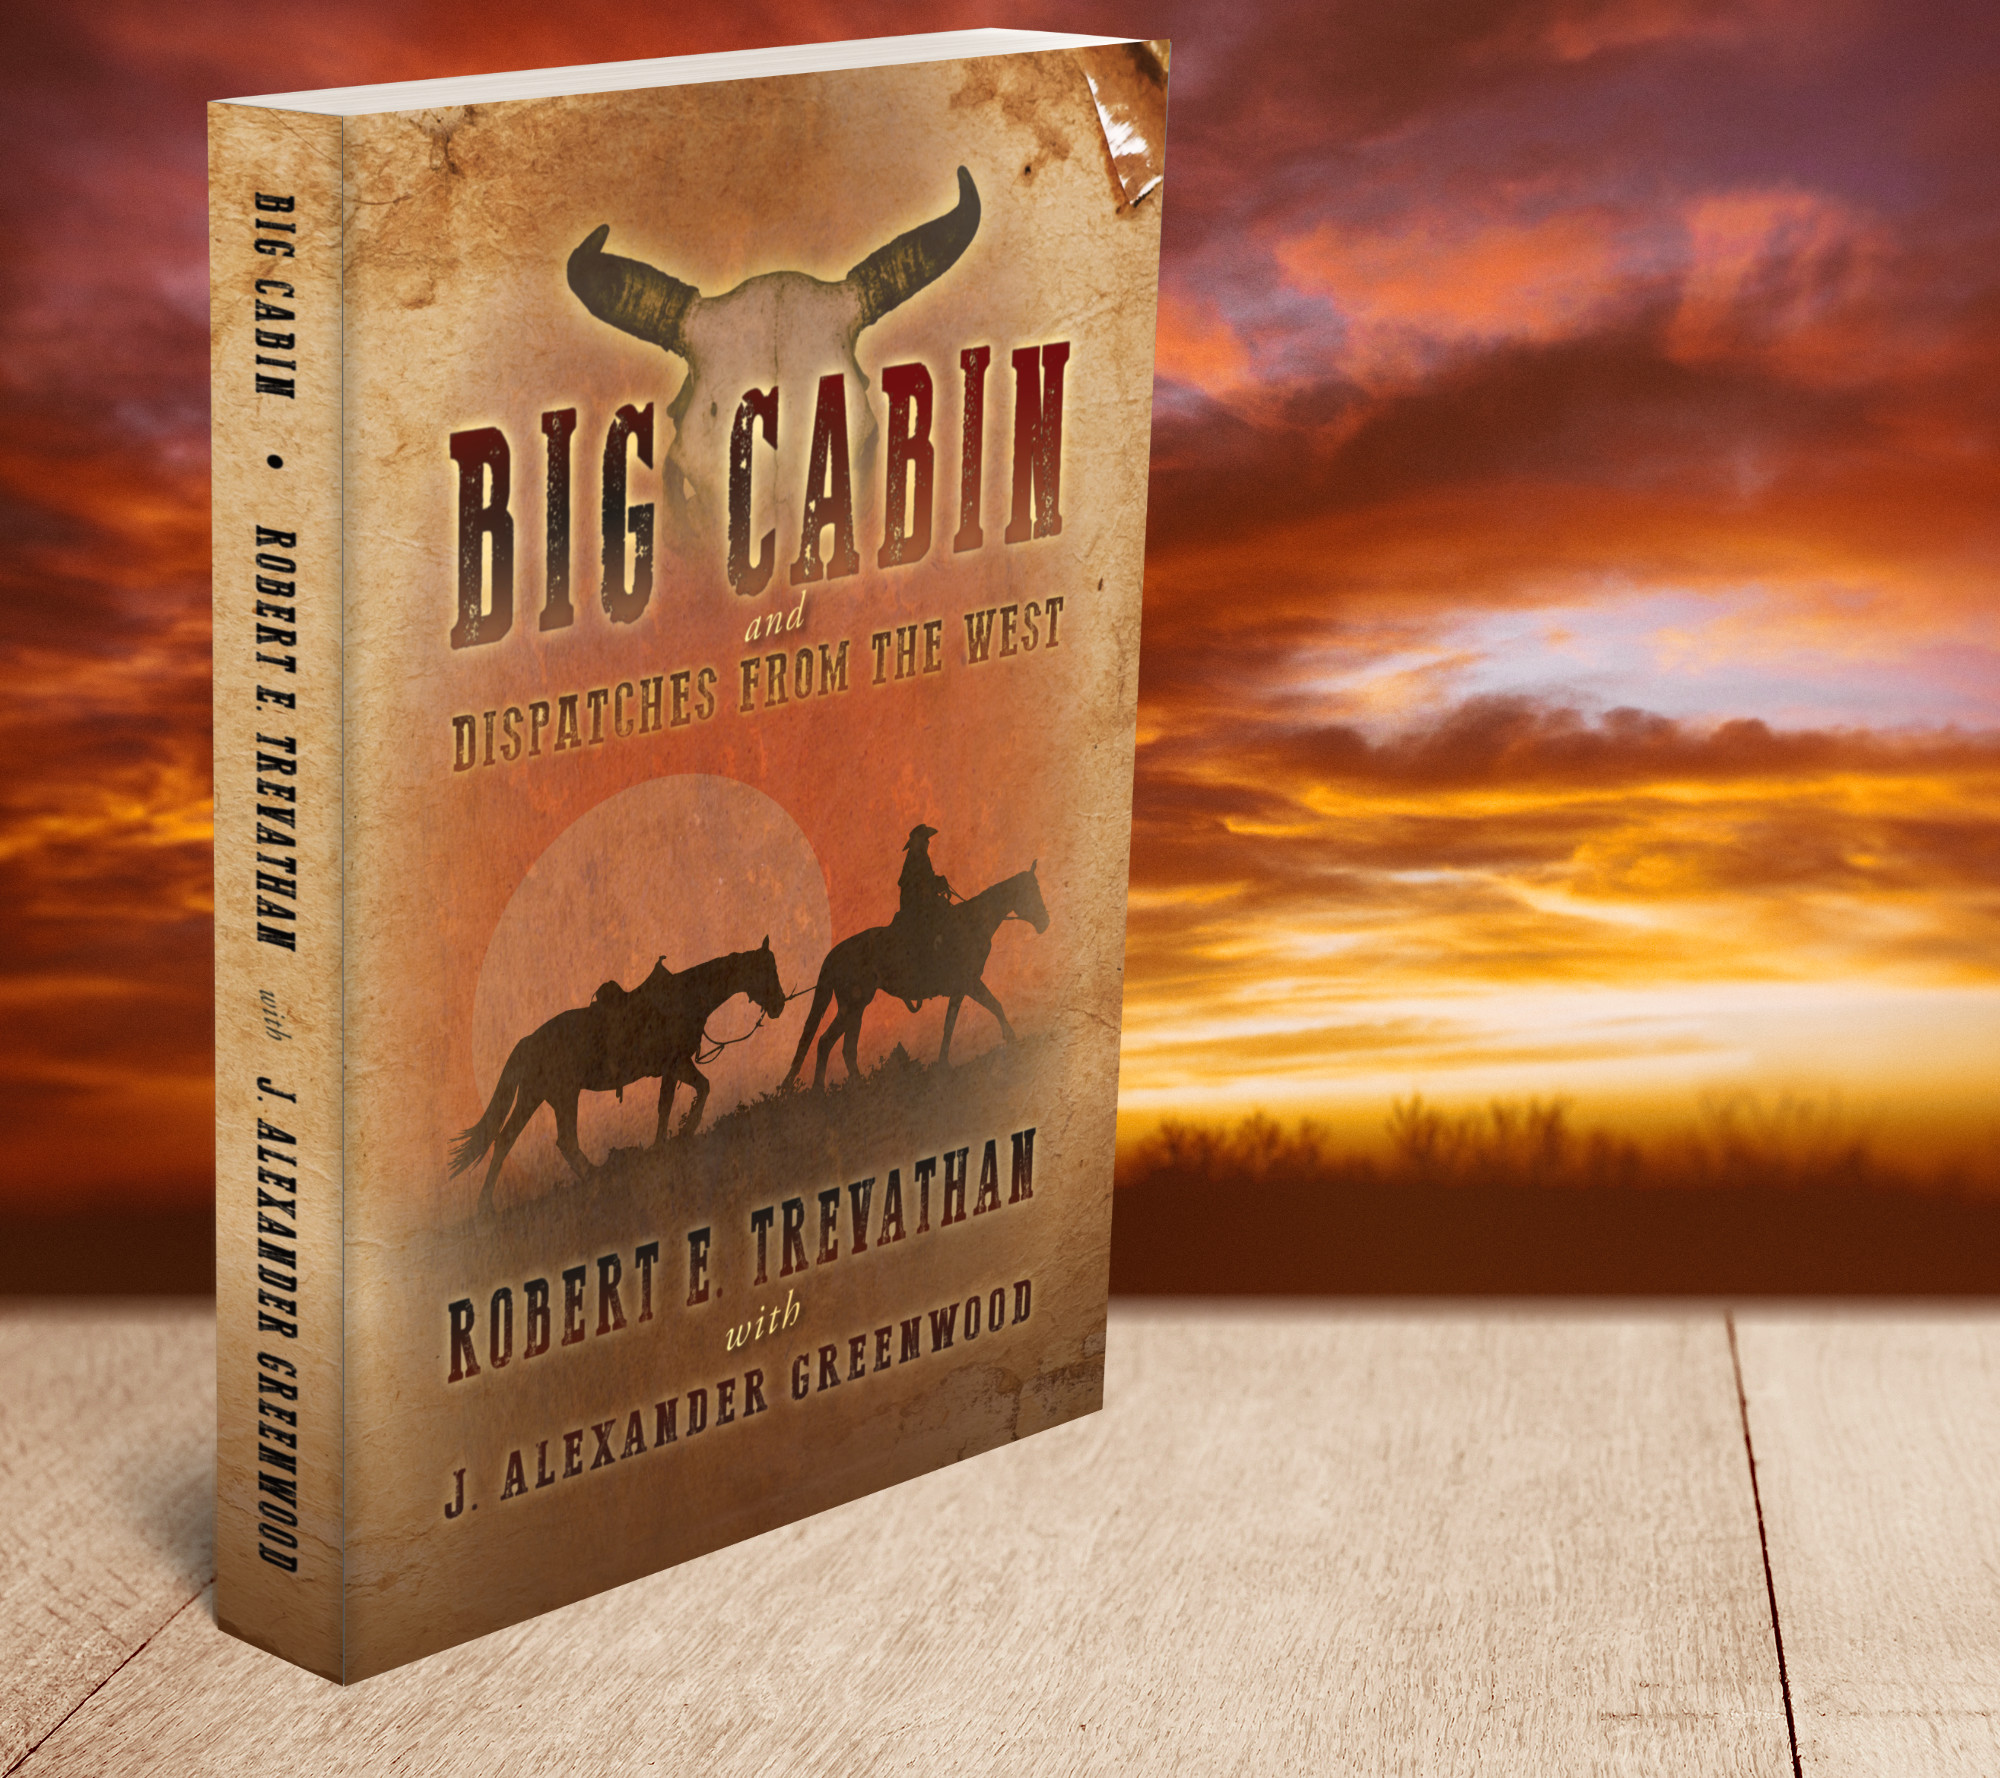 BIG CABIN-6x9-Paperback-Upright-Front-Only2.jpg